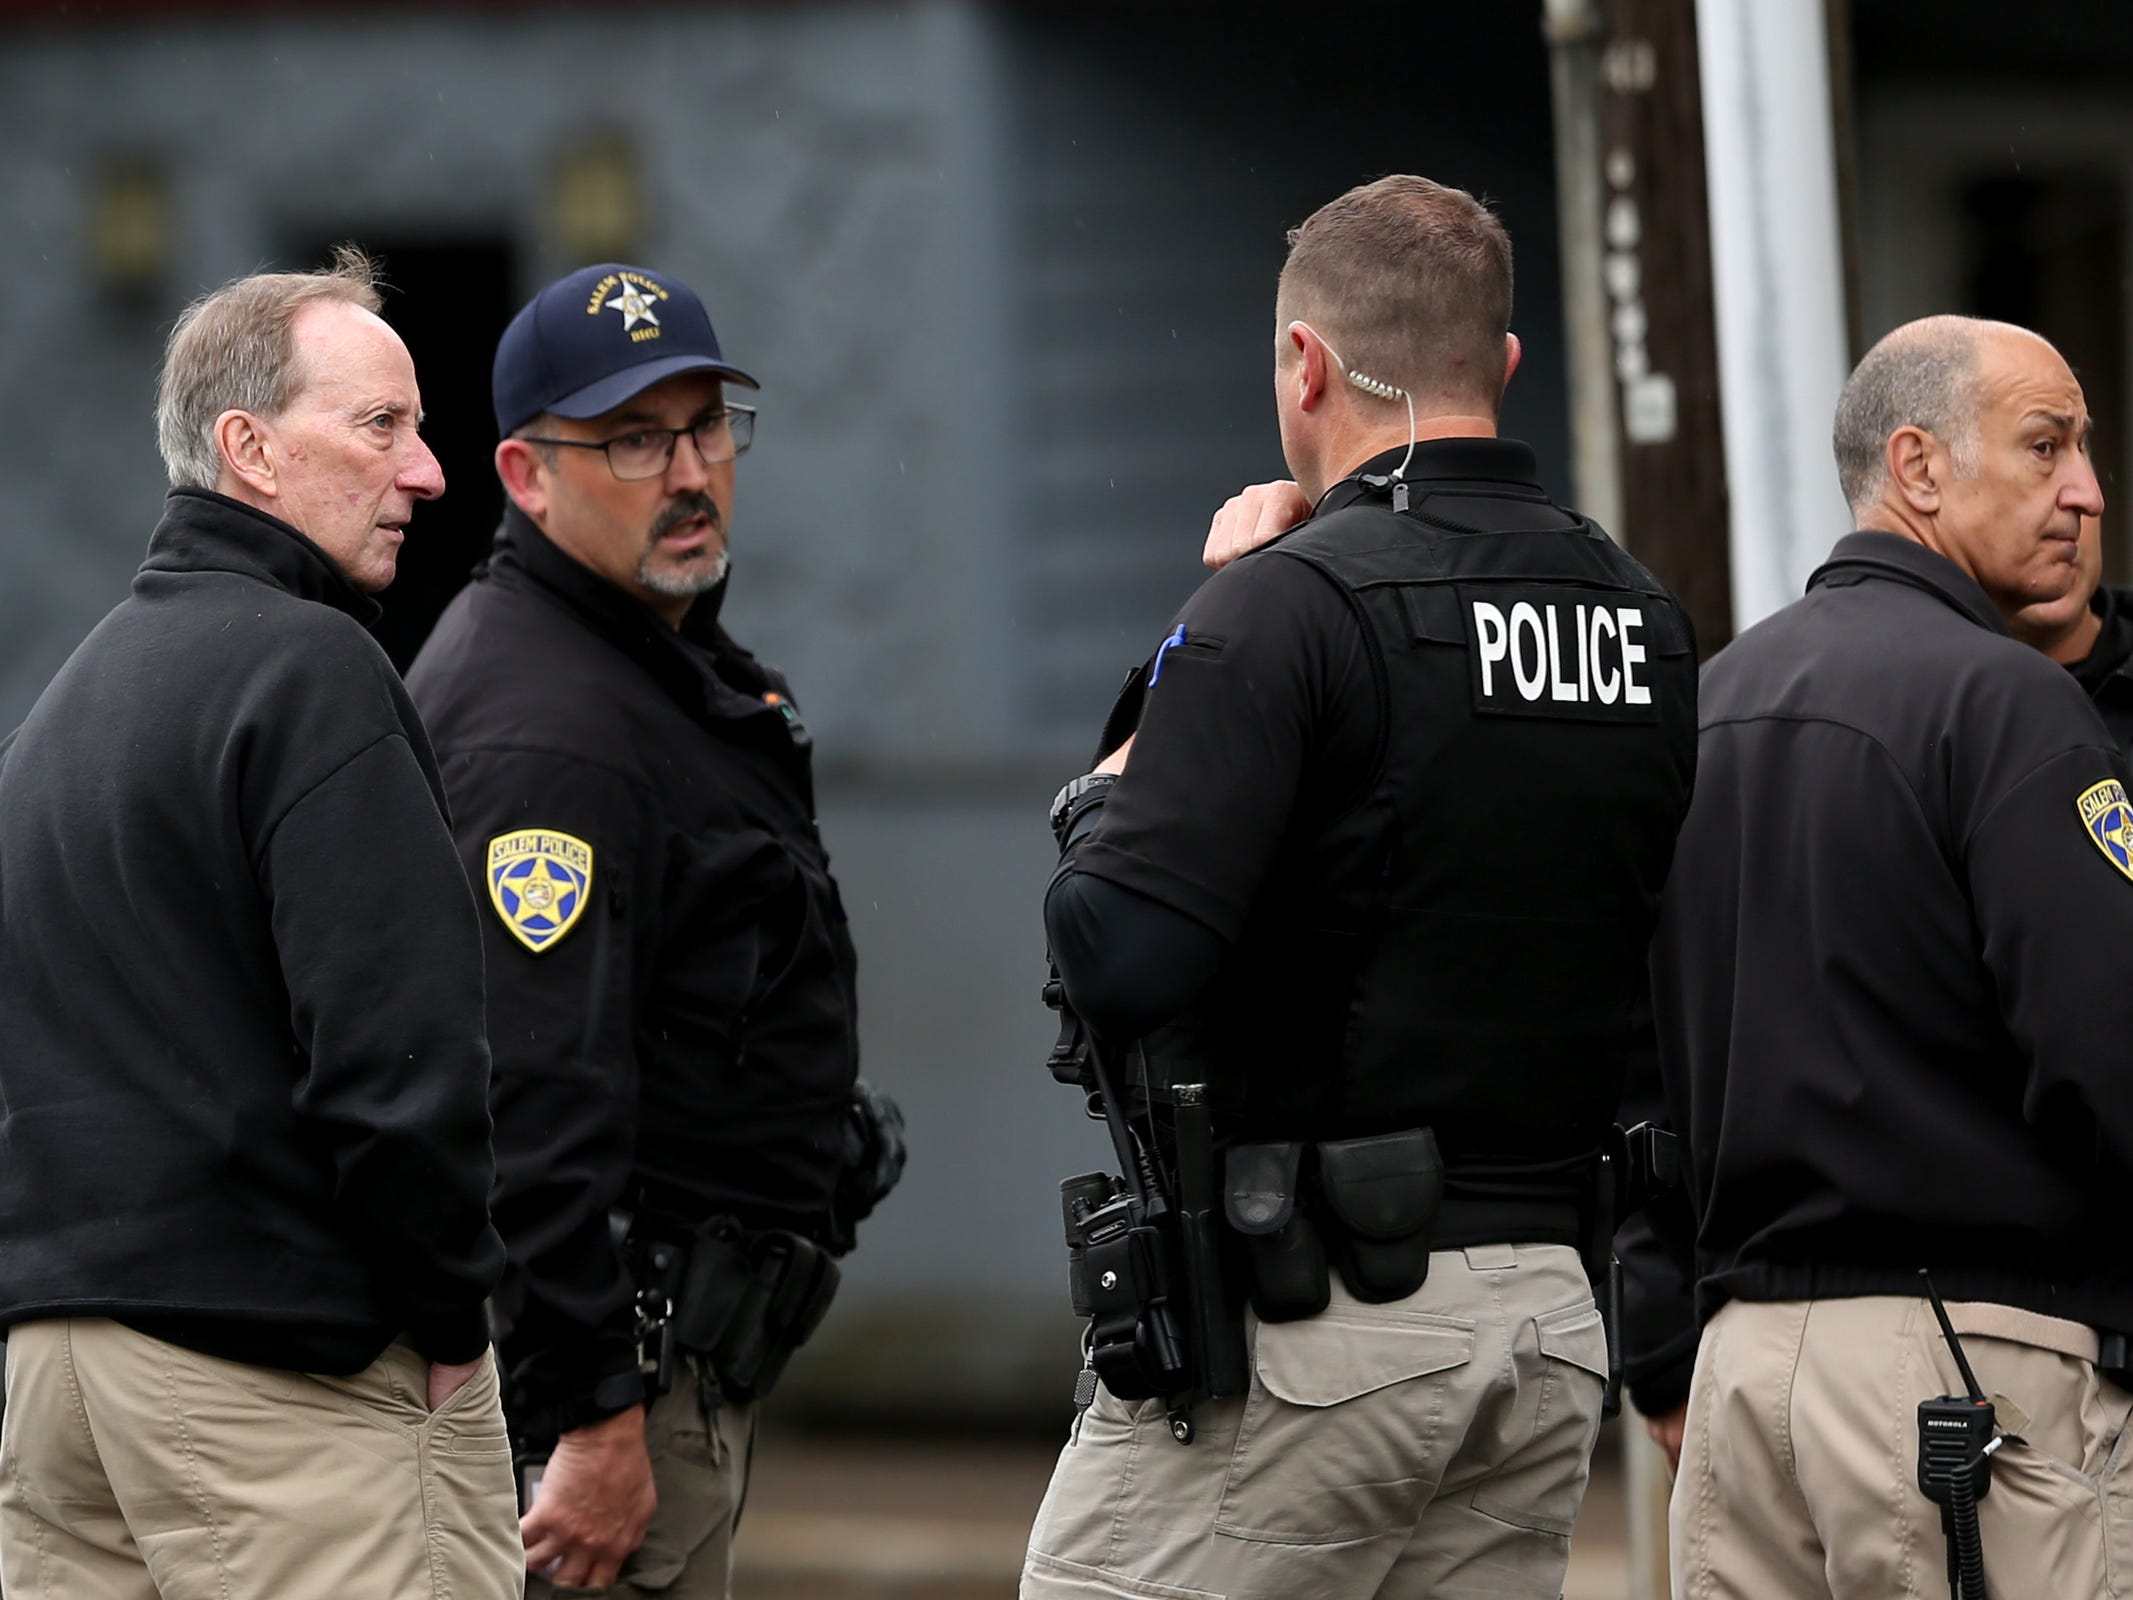 Salem Police Chief Jerry Moore, far left, and others respond to an apartment where a suspect in an overnight officer-involved shooting was hiding out on Broadway St. NE in Salem on May 15, 2019. Following a traffic stop on Tuesday evening, a veteran Salem Police patrol officer was wounded by multiple gunshots. She has since been released from Salem Hospital. Police also took another person into custody who was in the apartment.